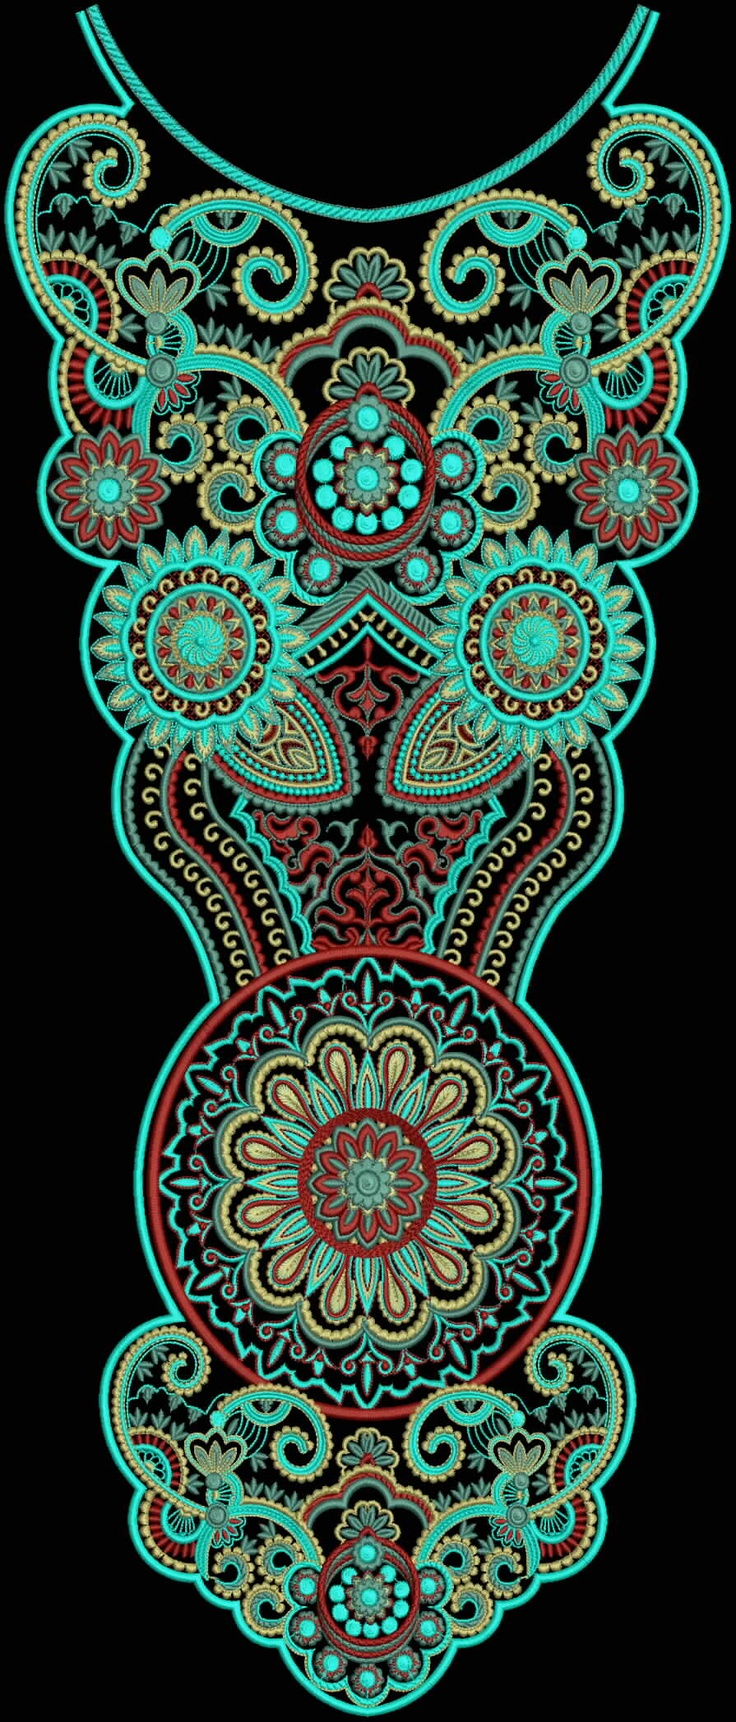 Latest Embroidery Designs For Sale, If U Want Embroidery Designs Plz Contact (Khalid Mahmood, +92-300-9406667)  www.embroiderydesignss.blogspot.com  Design# Gultar38